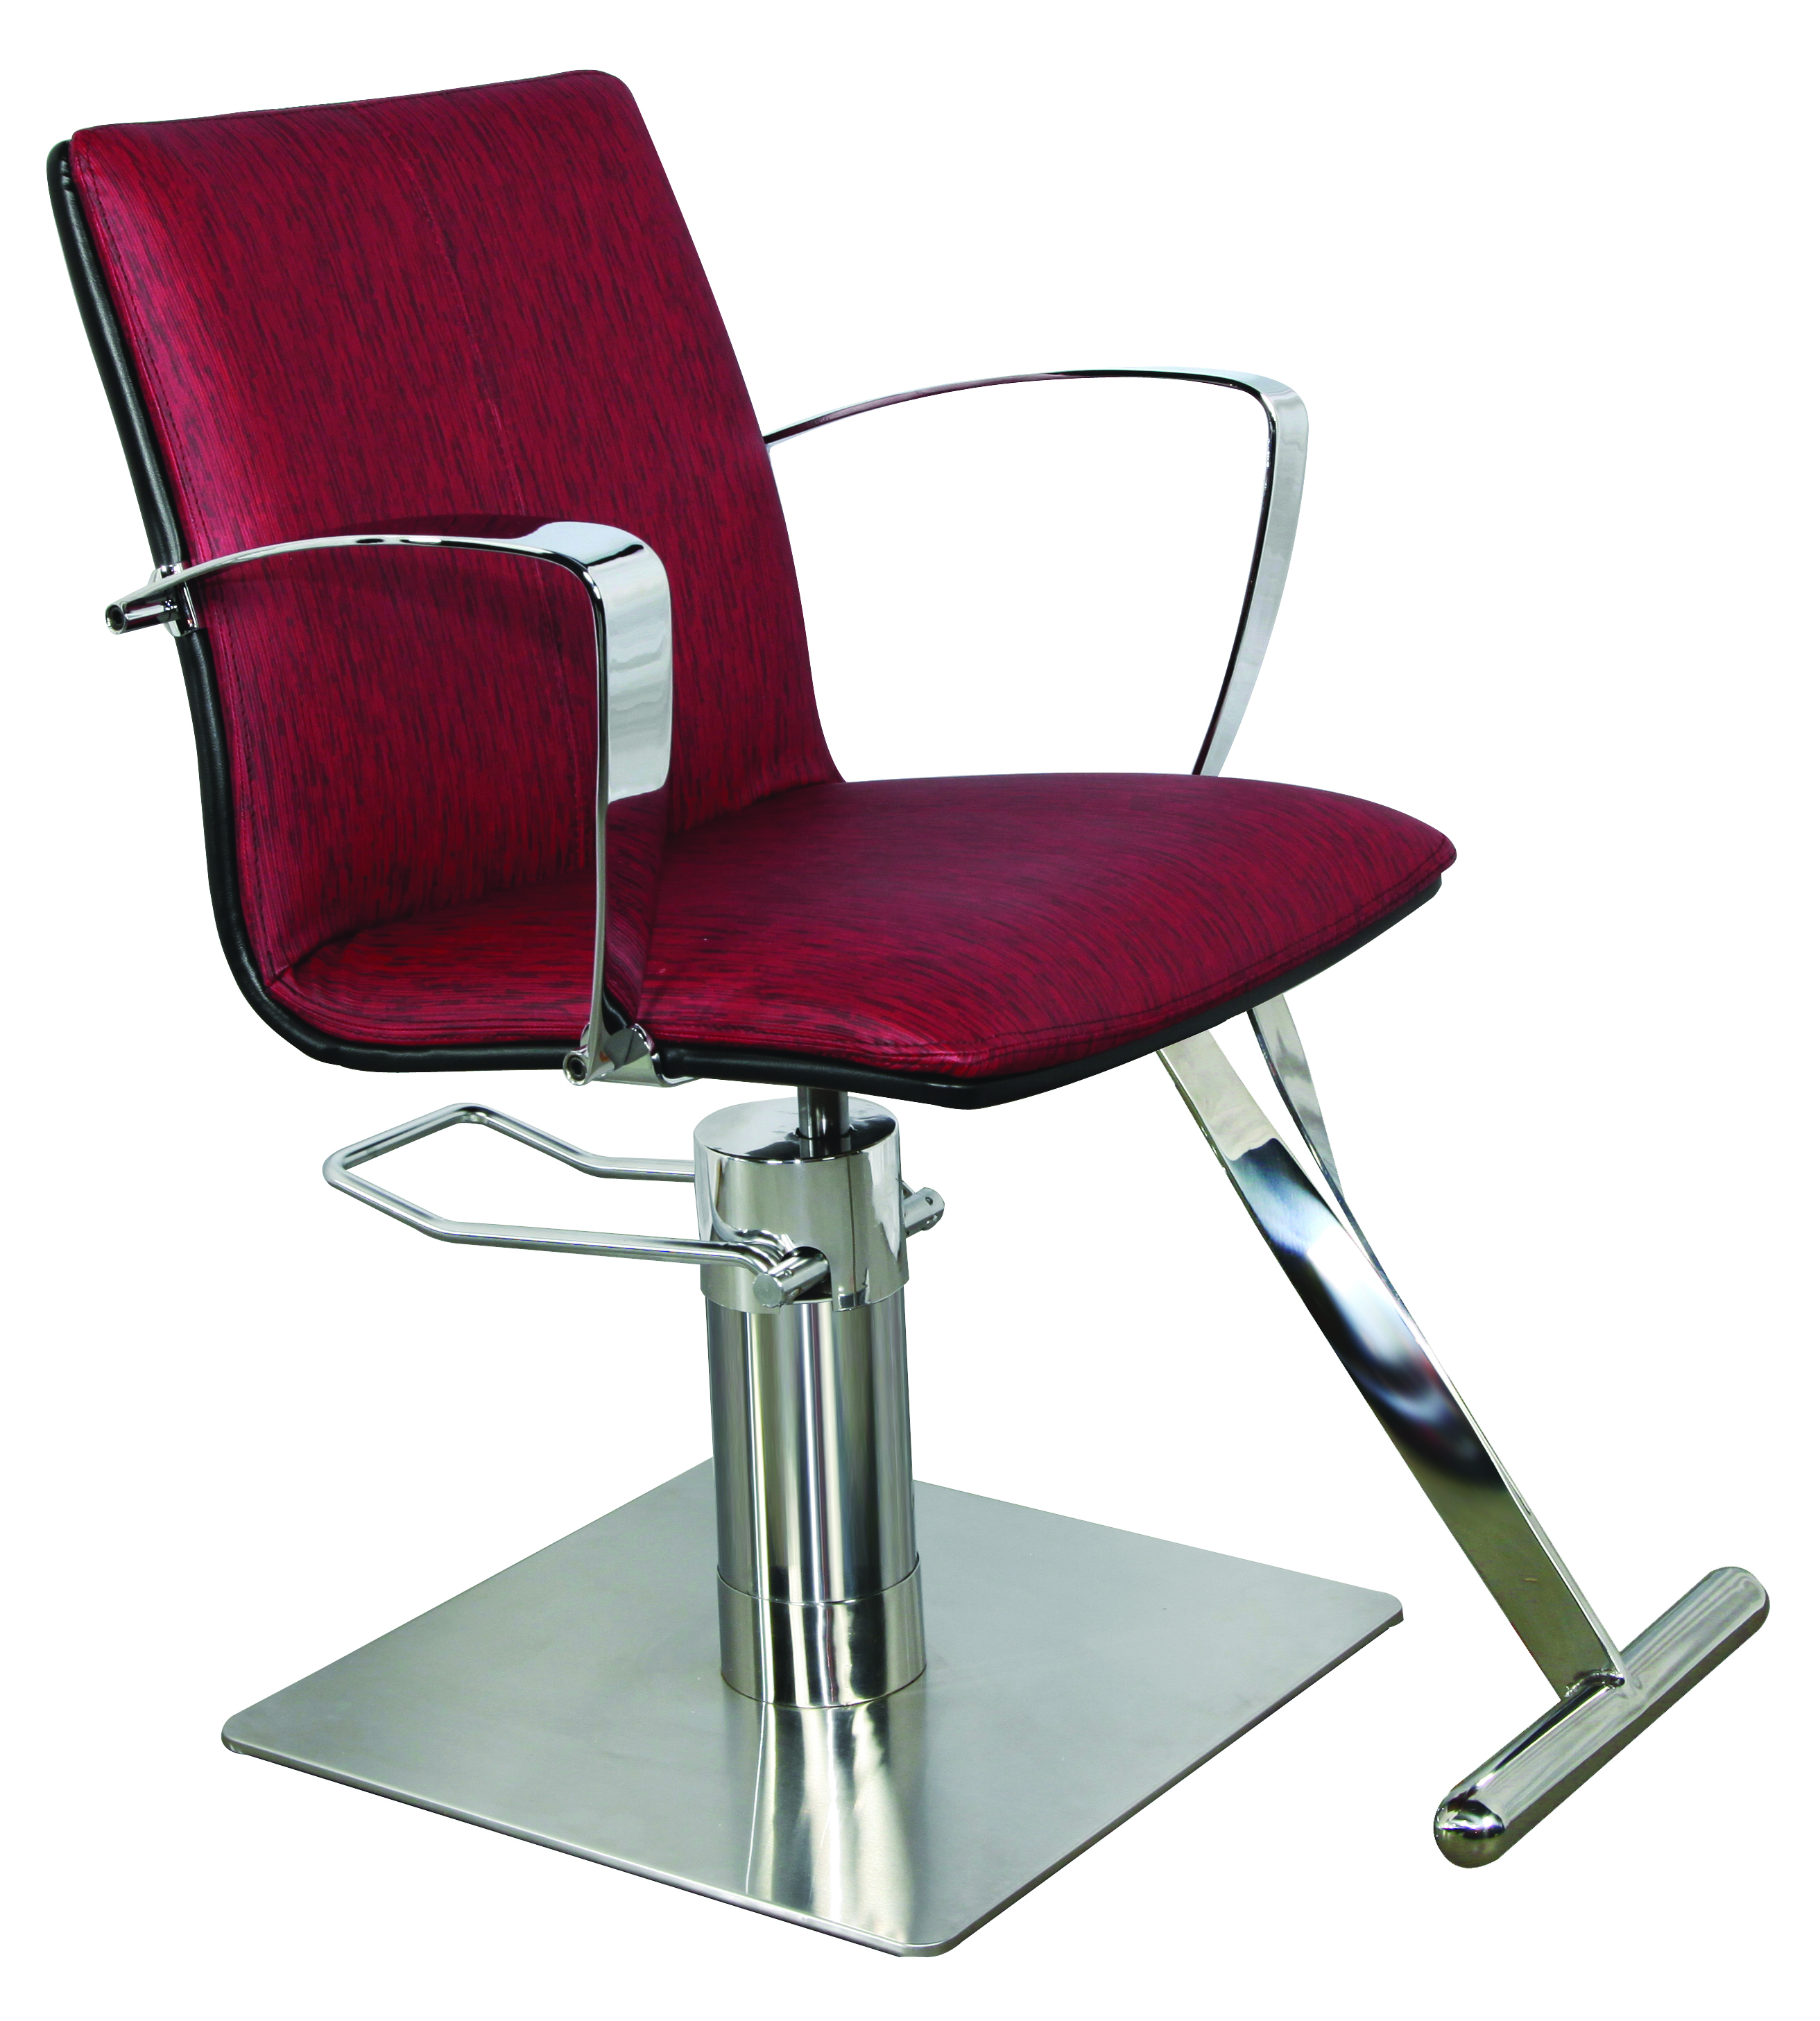 hair styling chairs cheap salvador sv 60 one world inspired salon styling chair in 6724